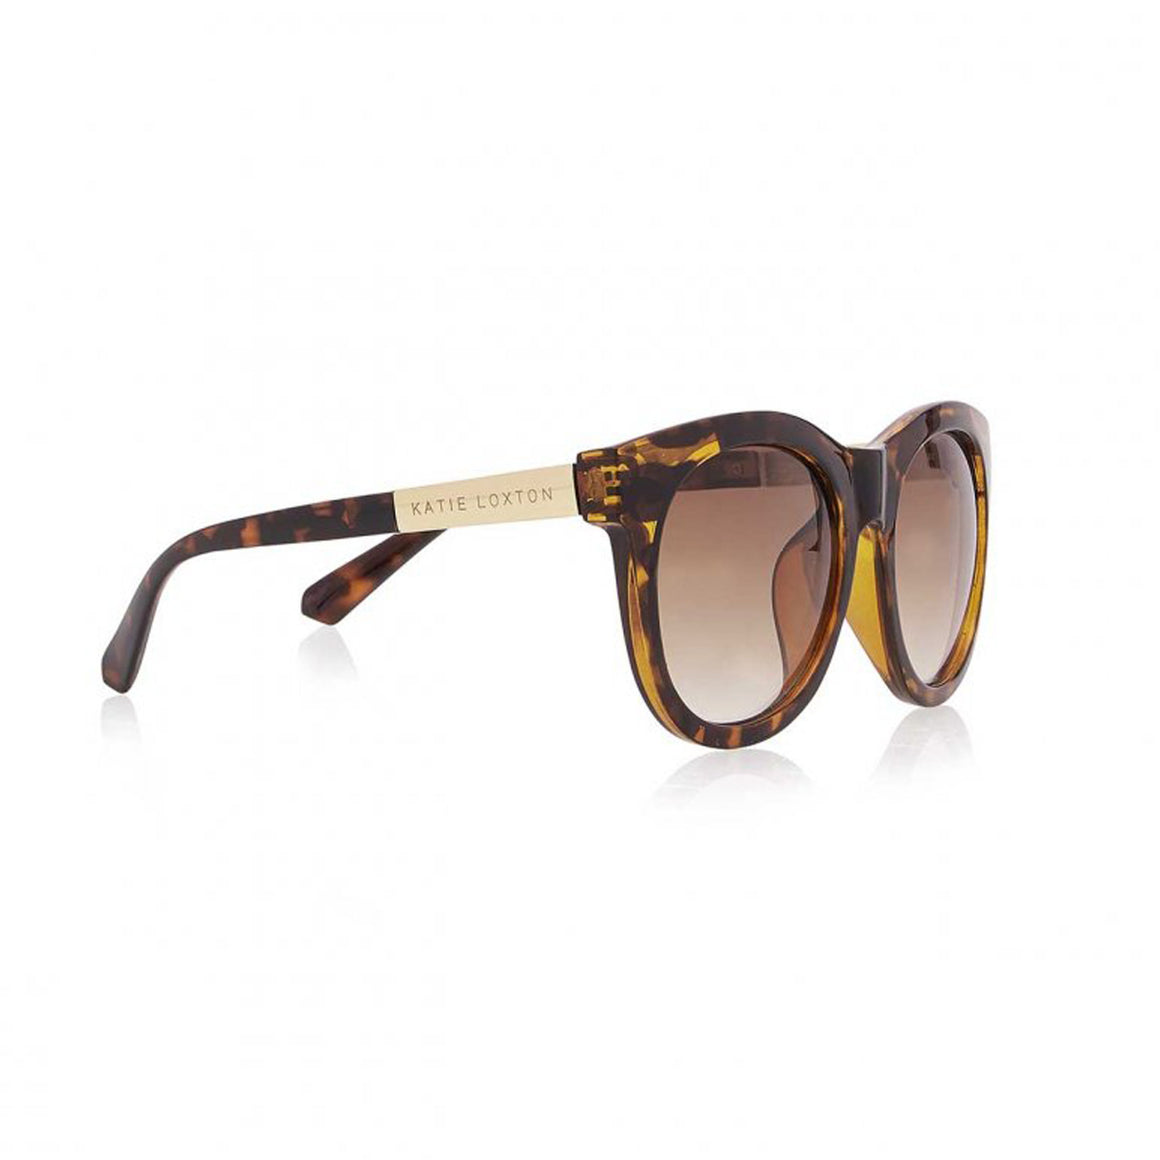 Vienna Sunglasses for Women in Tortoiseshell